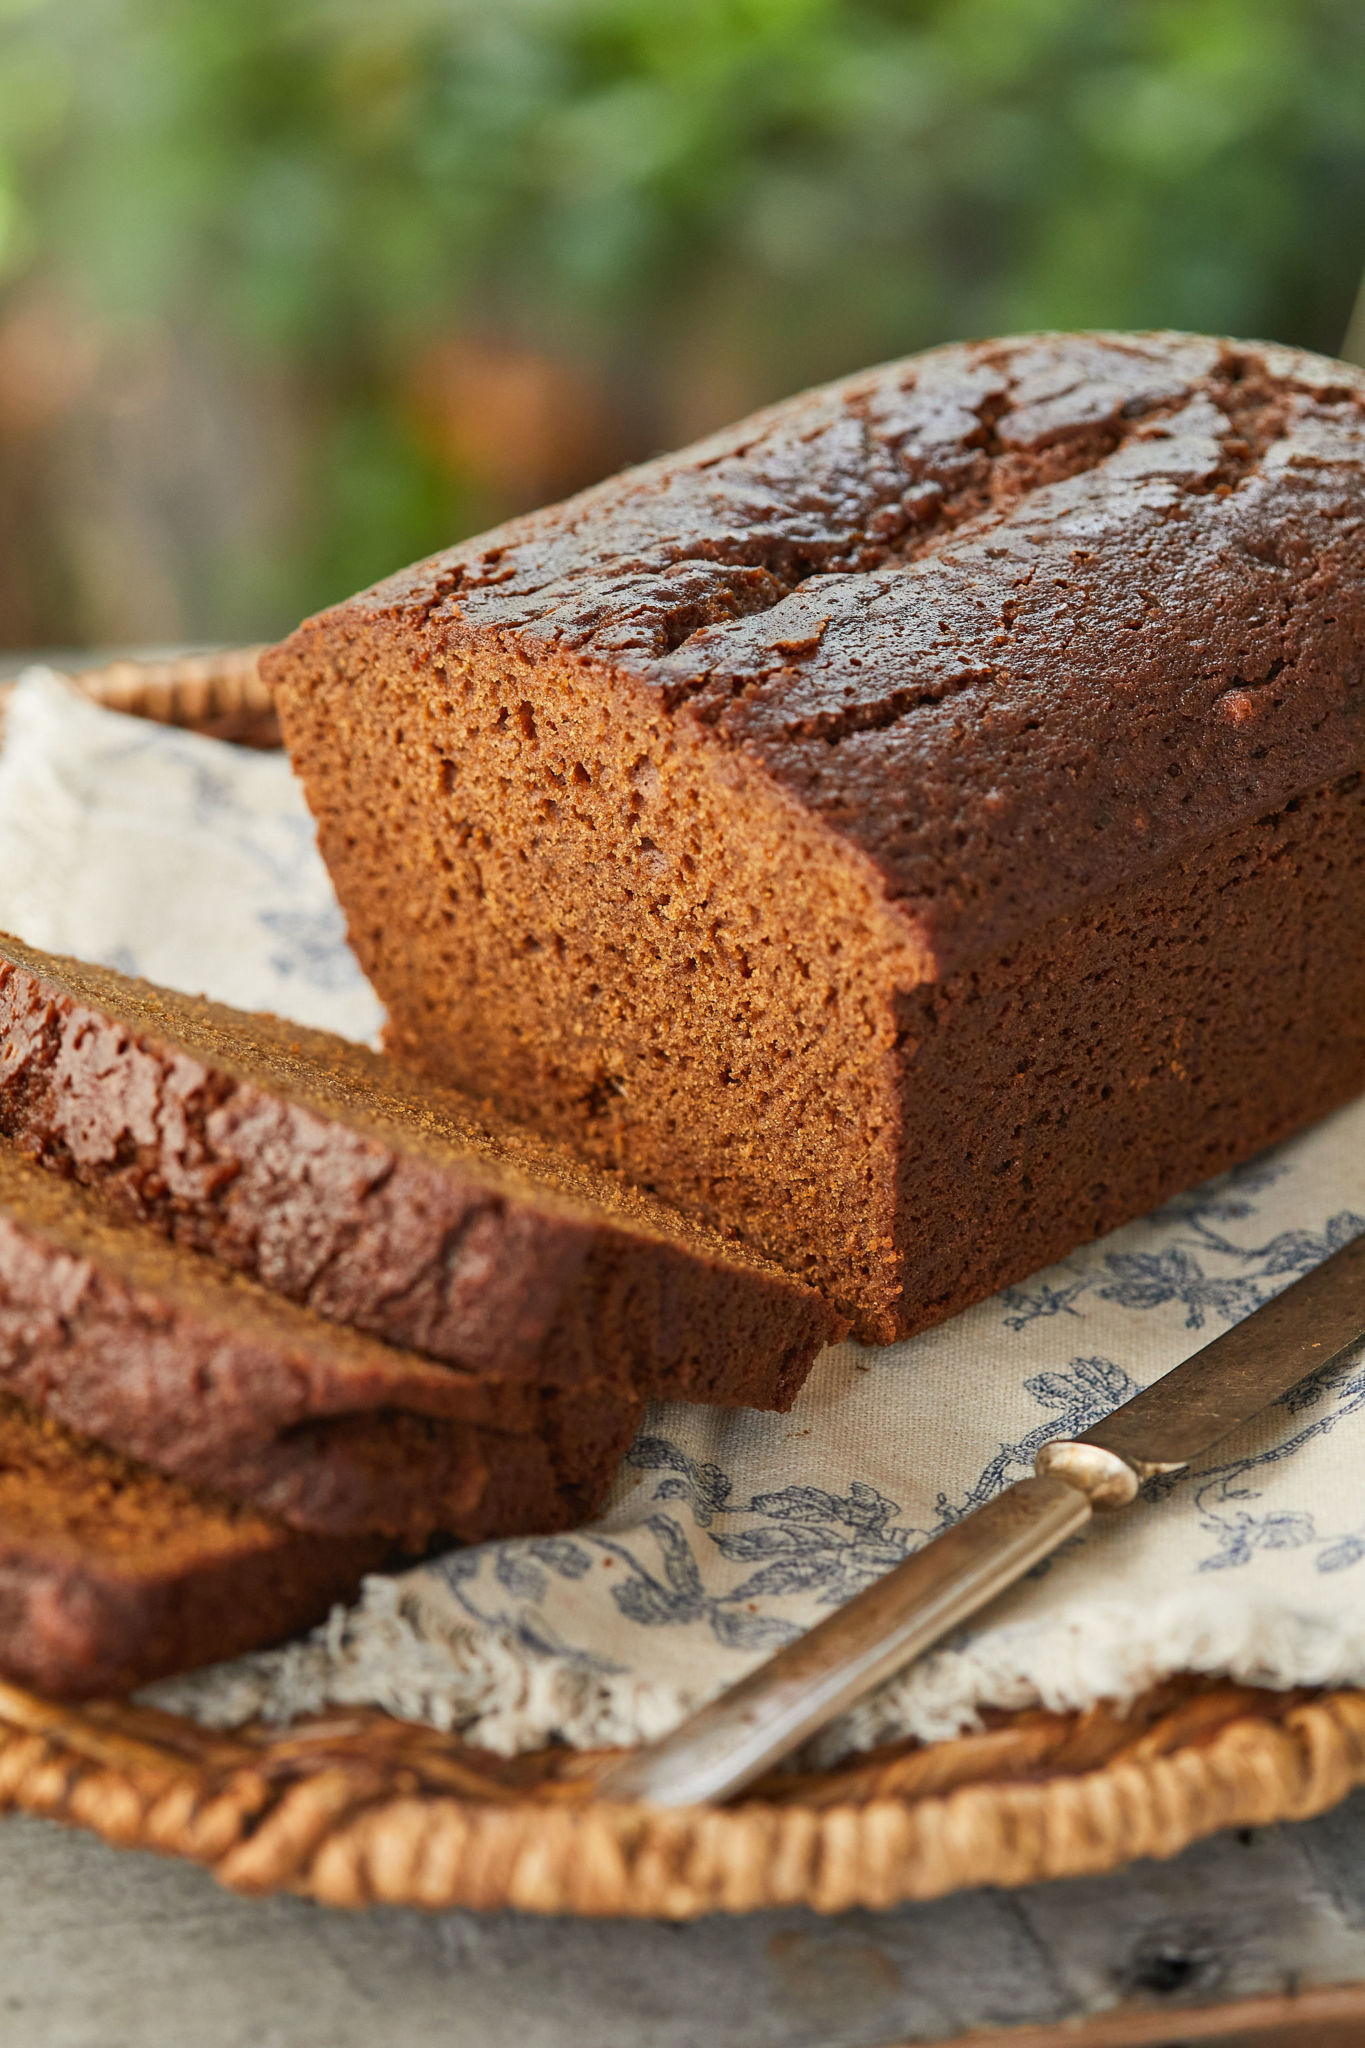 Warm, spiced, Sticky Gingerbread, sliced.